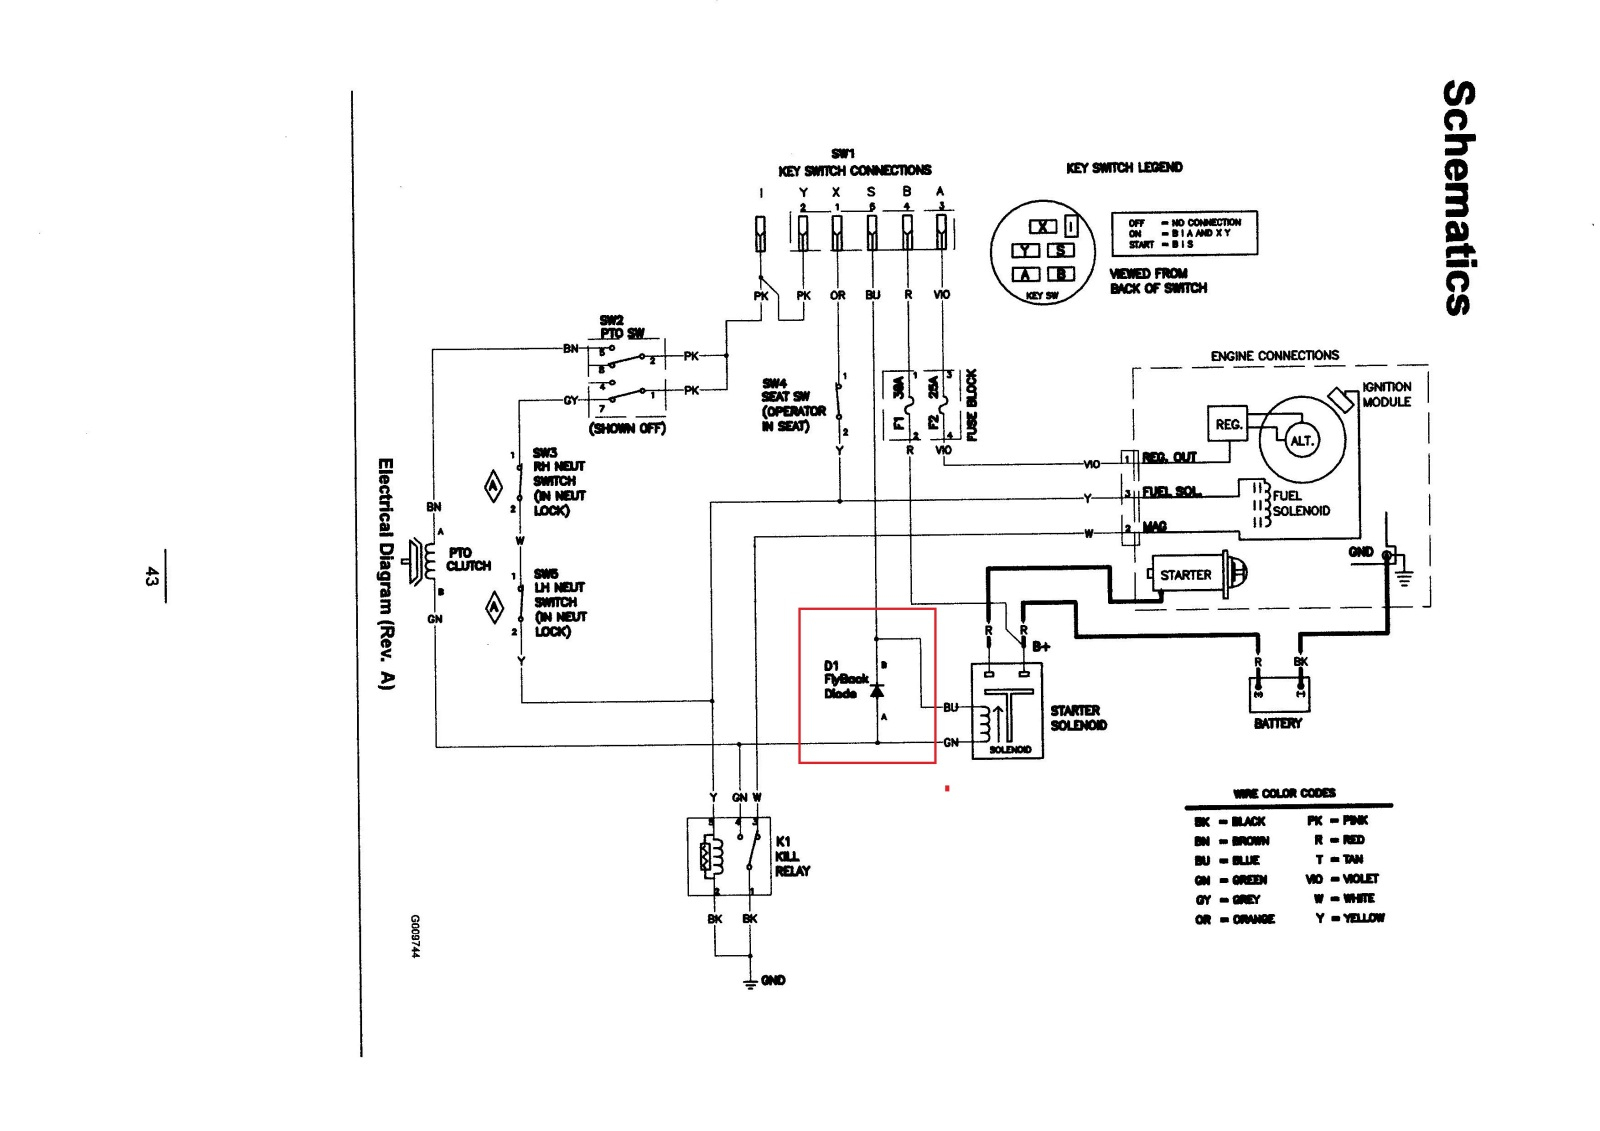 Peachy Ford Tractor Ignition Switch Wiring Diagram Wirings Diagram Wiring Digital Resources Sulfshebarightsorg